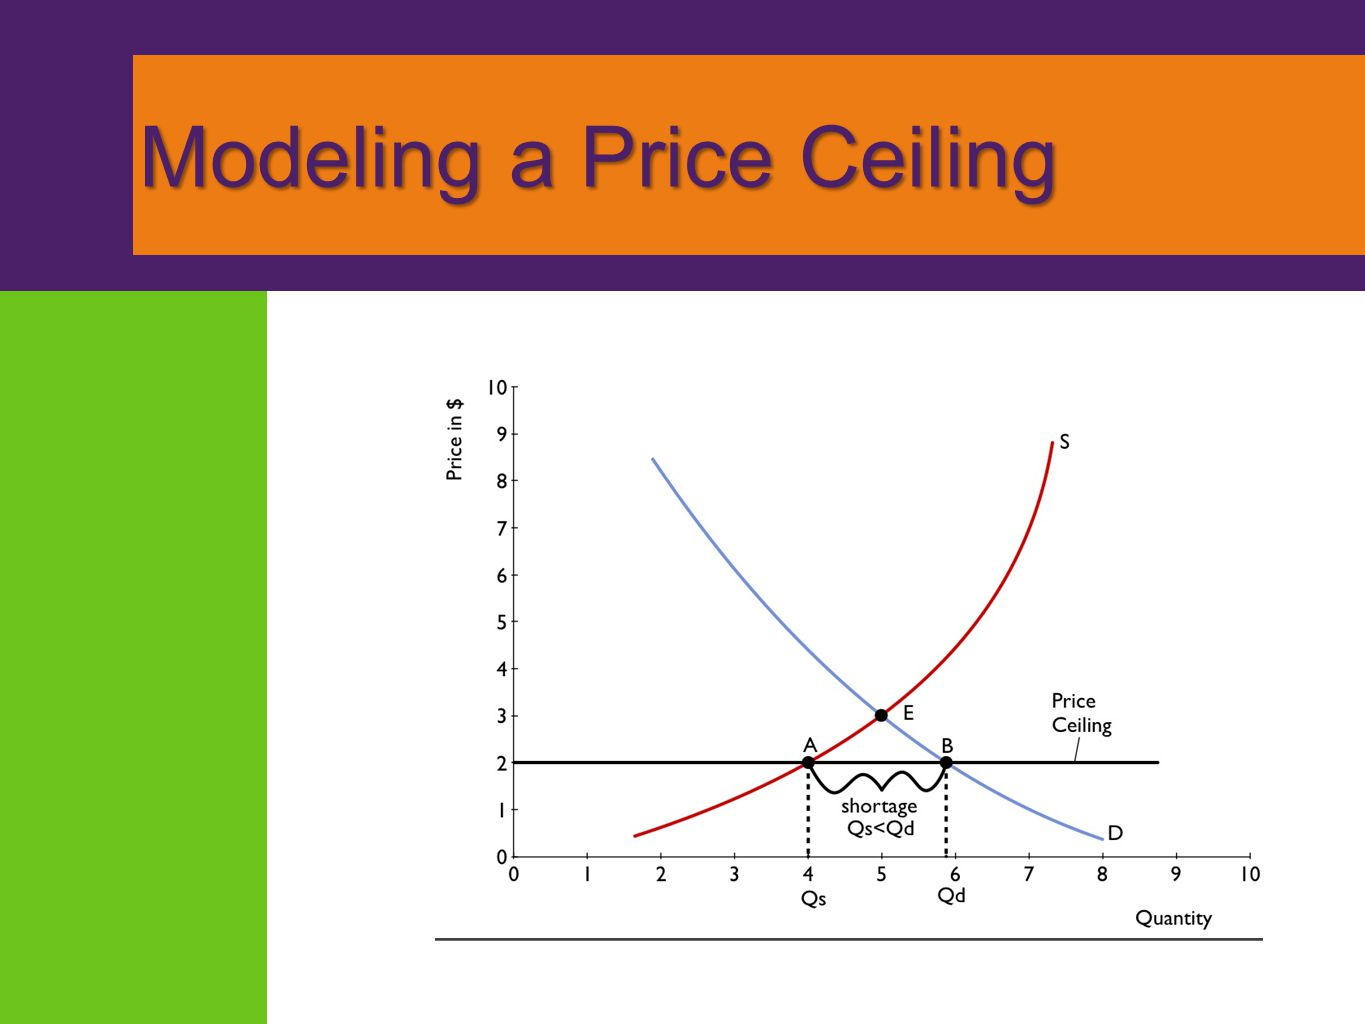 Modeling a Price Ceiling